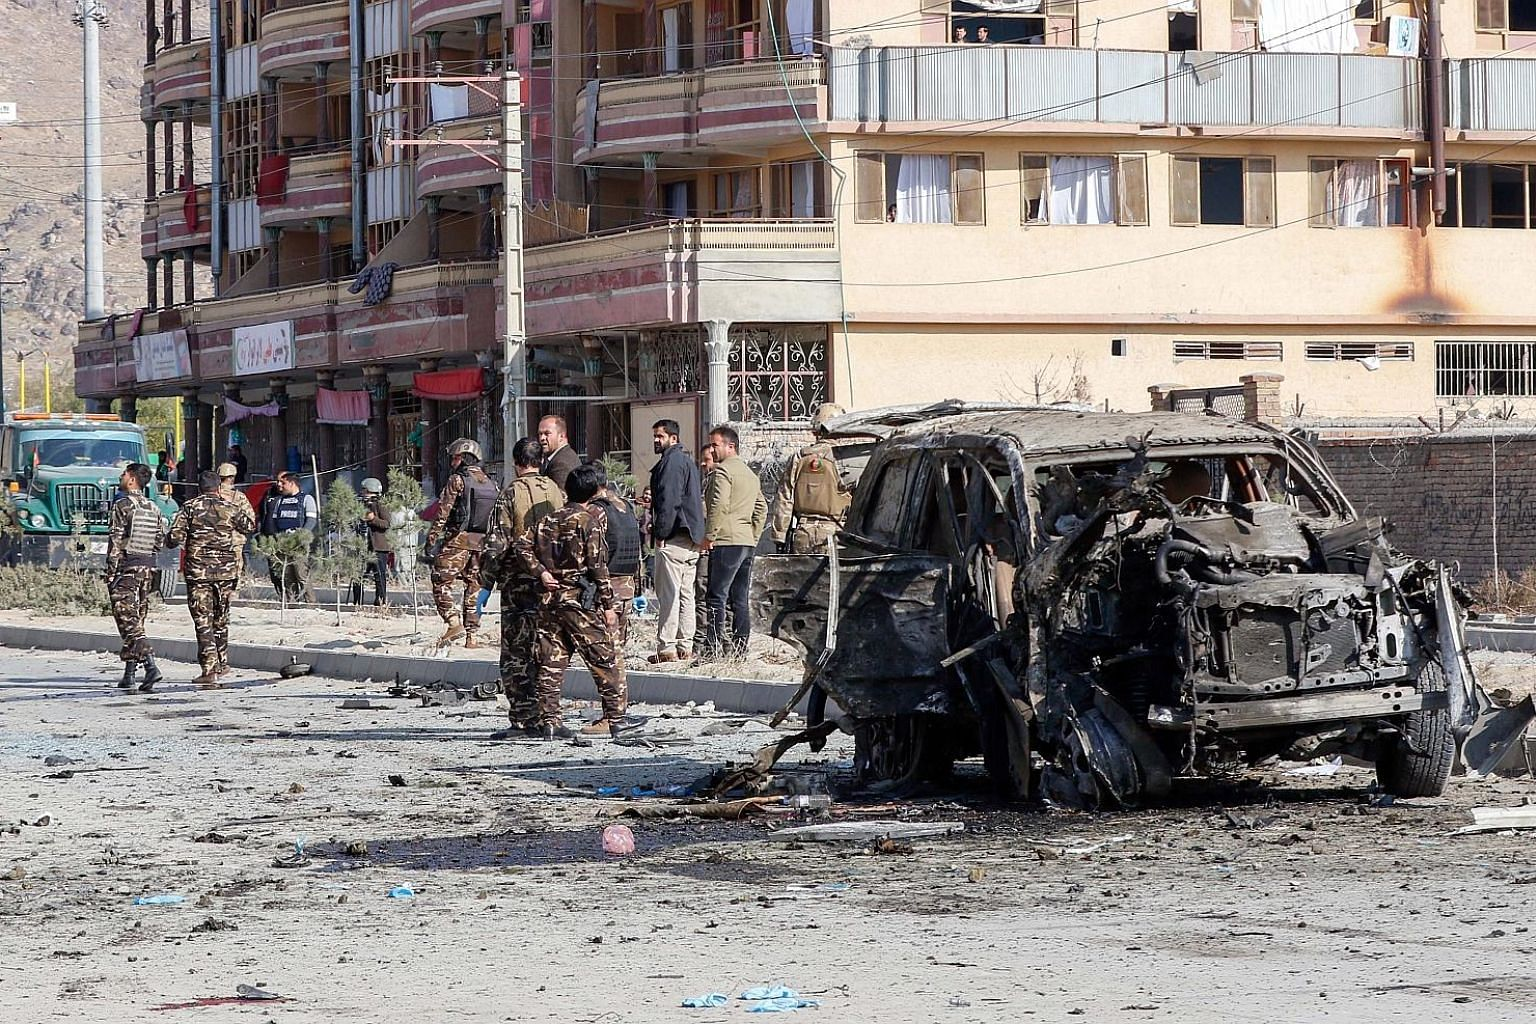 Afghan security forces inspecting the site of a car bomb attack, which targeted an armoured vehicle that belonged to GardaWorld - a Canadian security company that saw four of its staff wounded in the attack - in Kabul on Wednesday. PHOTO: EPA-EFE